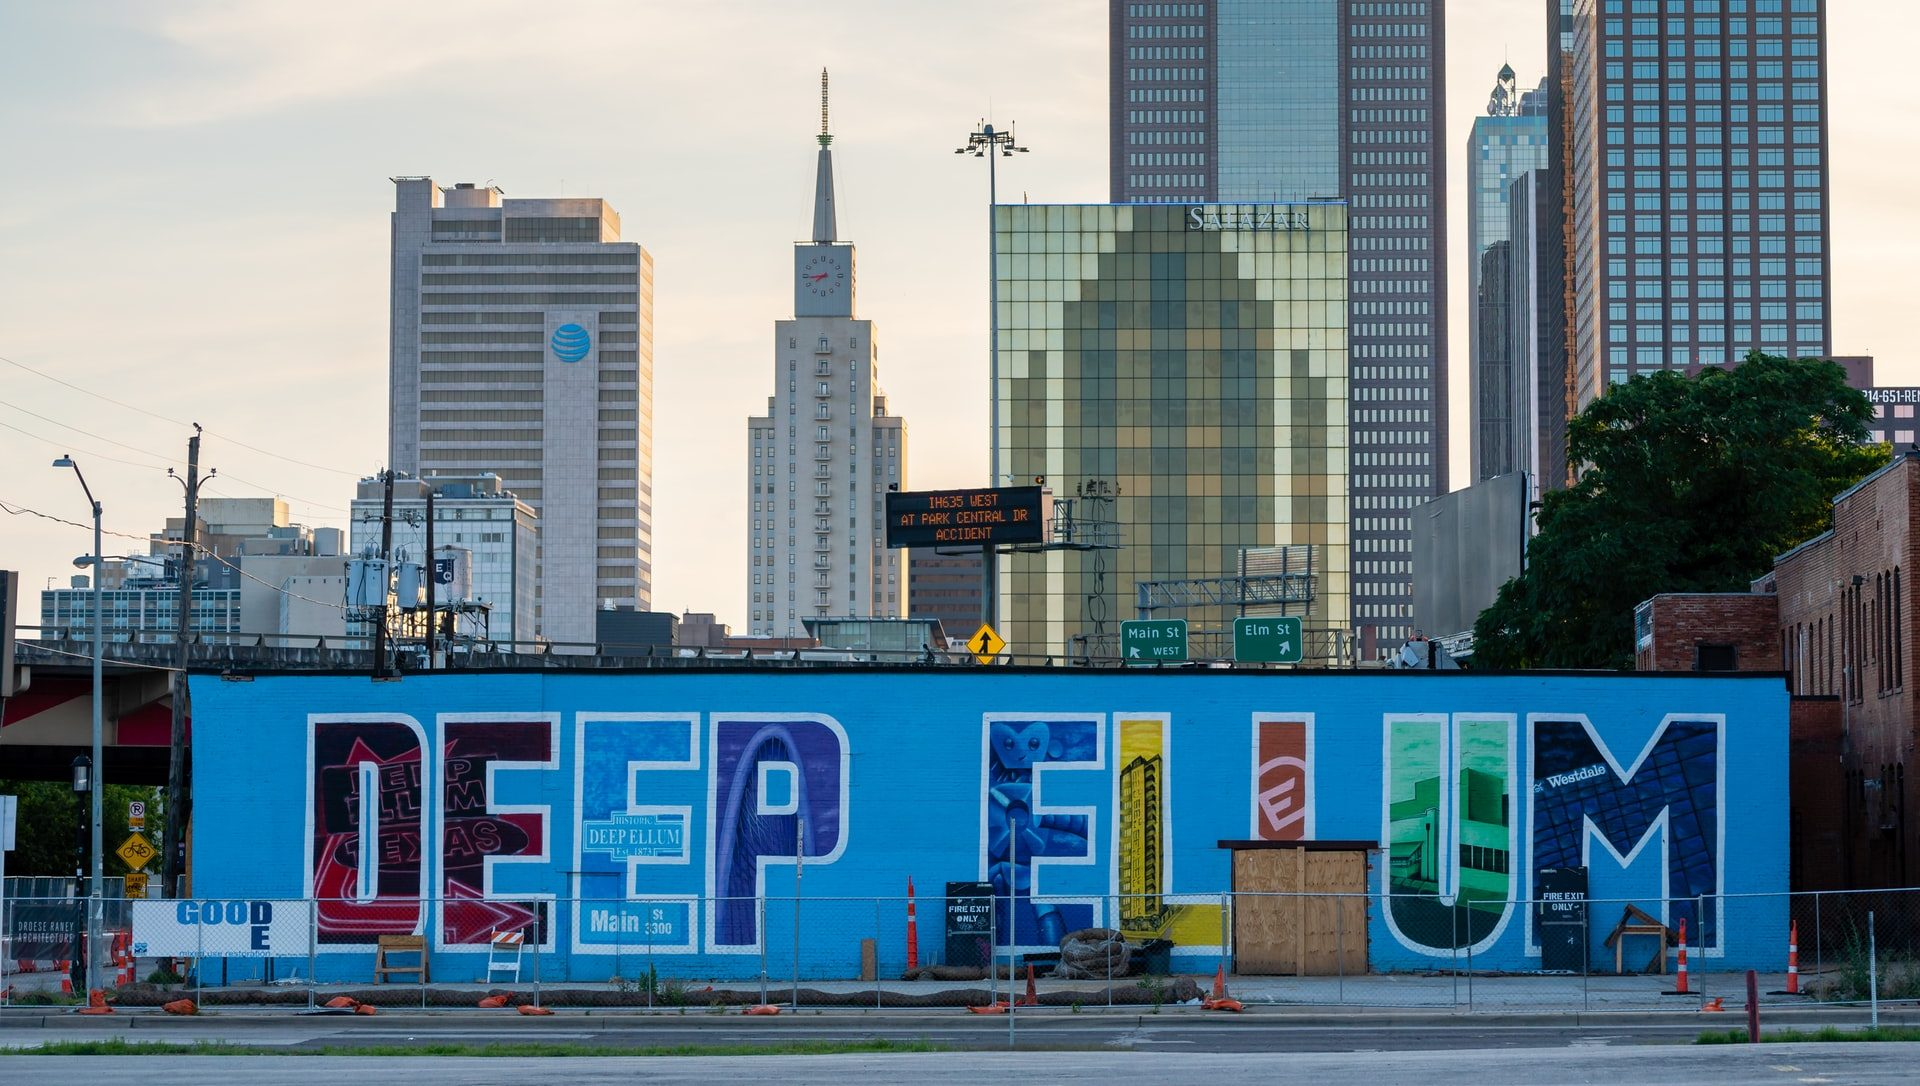 Deep Ellum mural with the name of the neighborhood